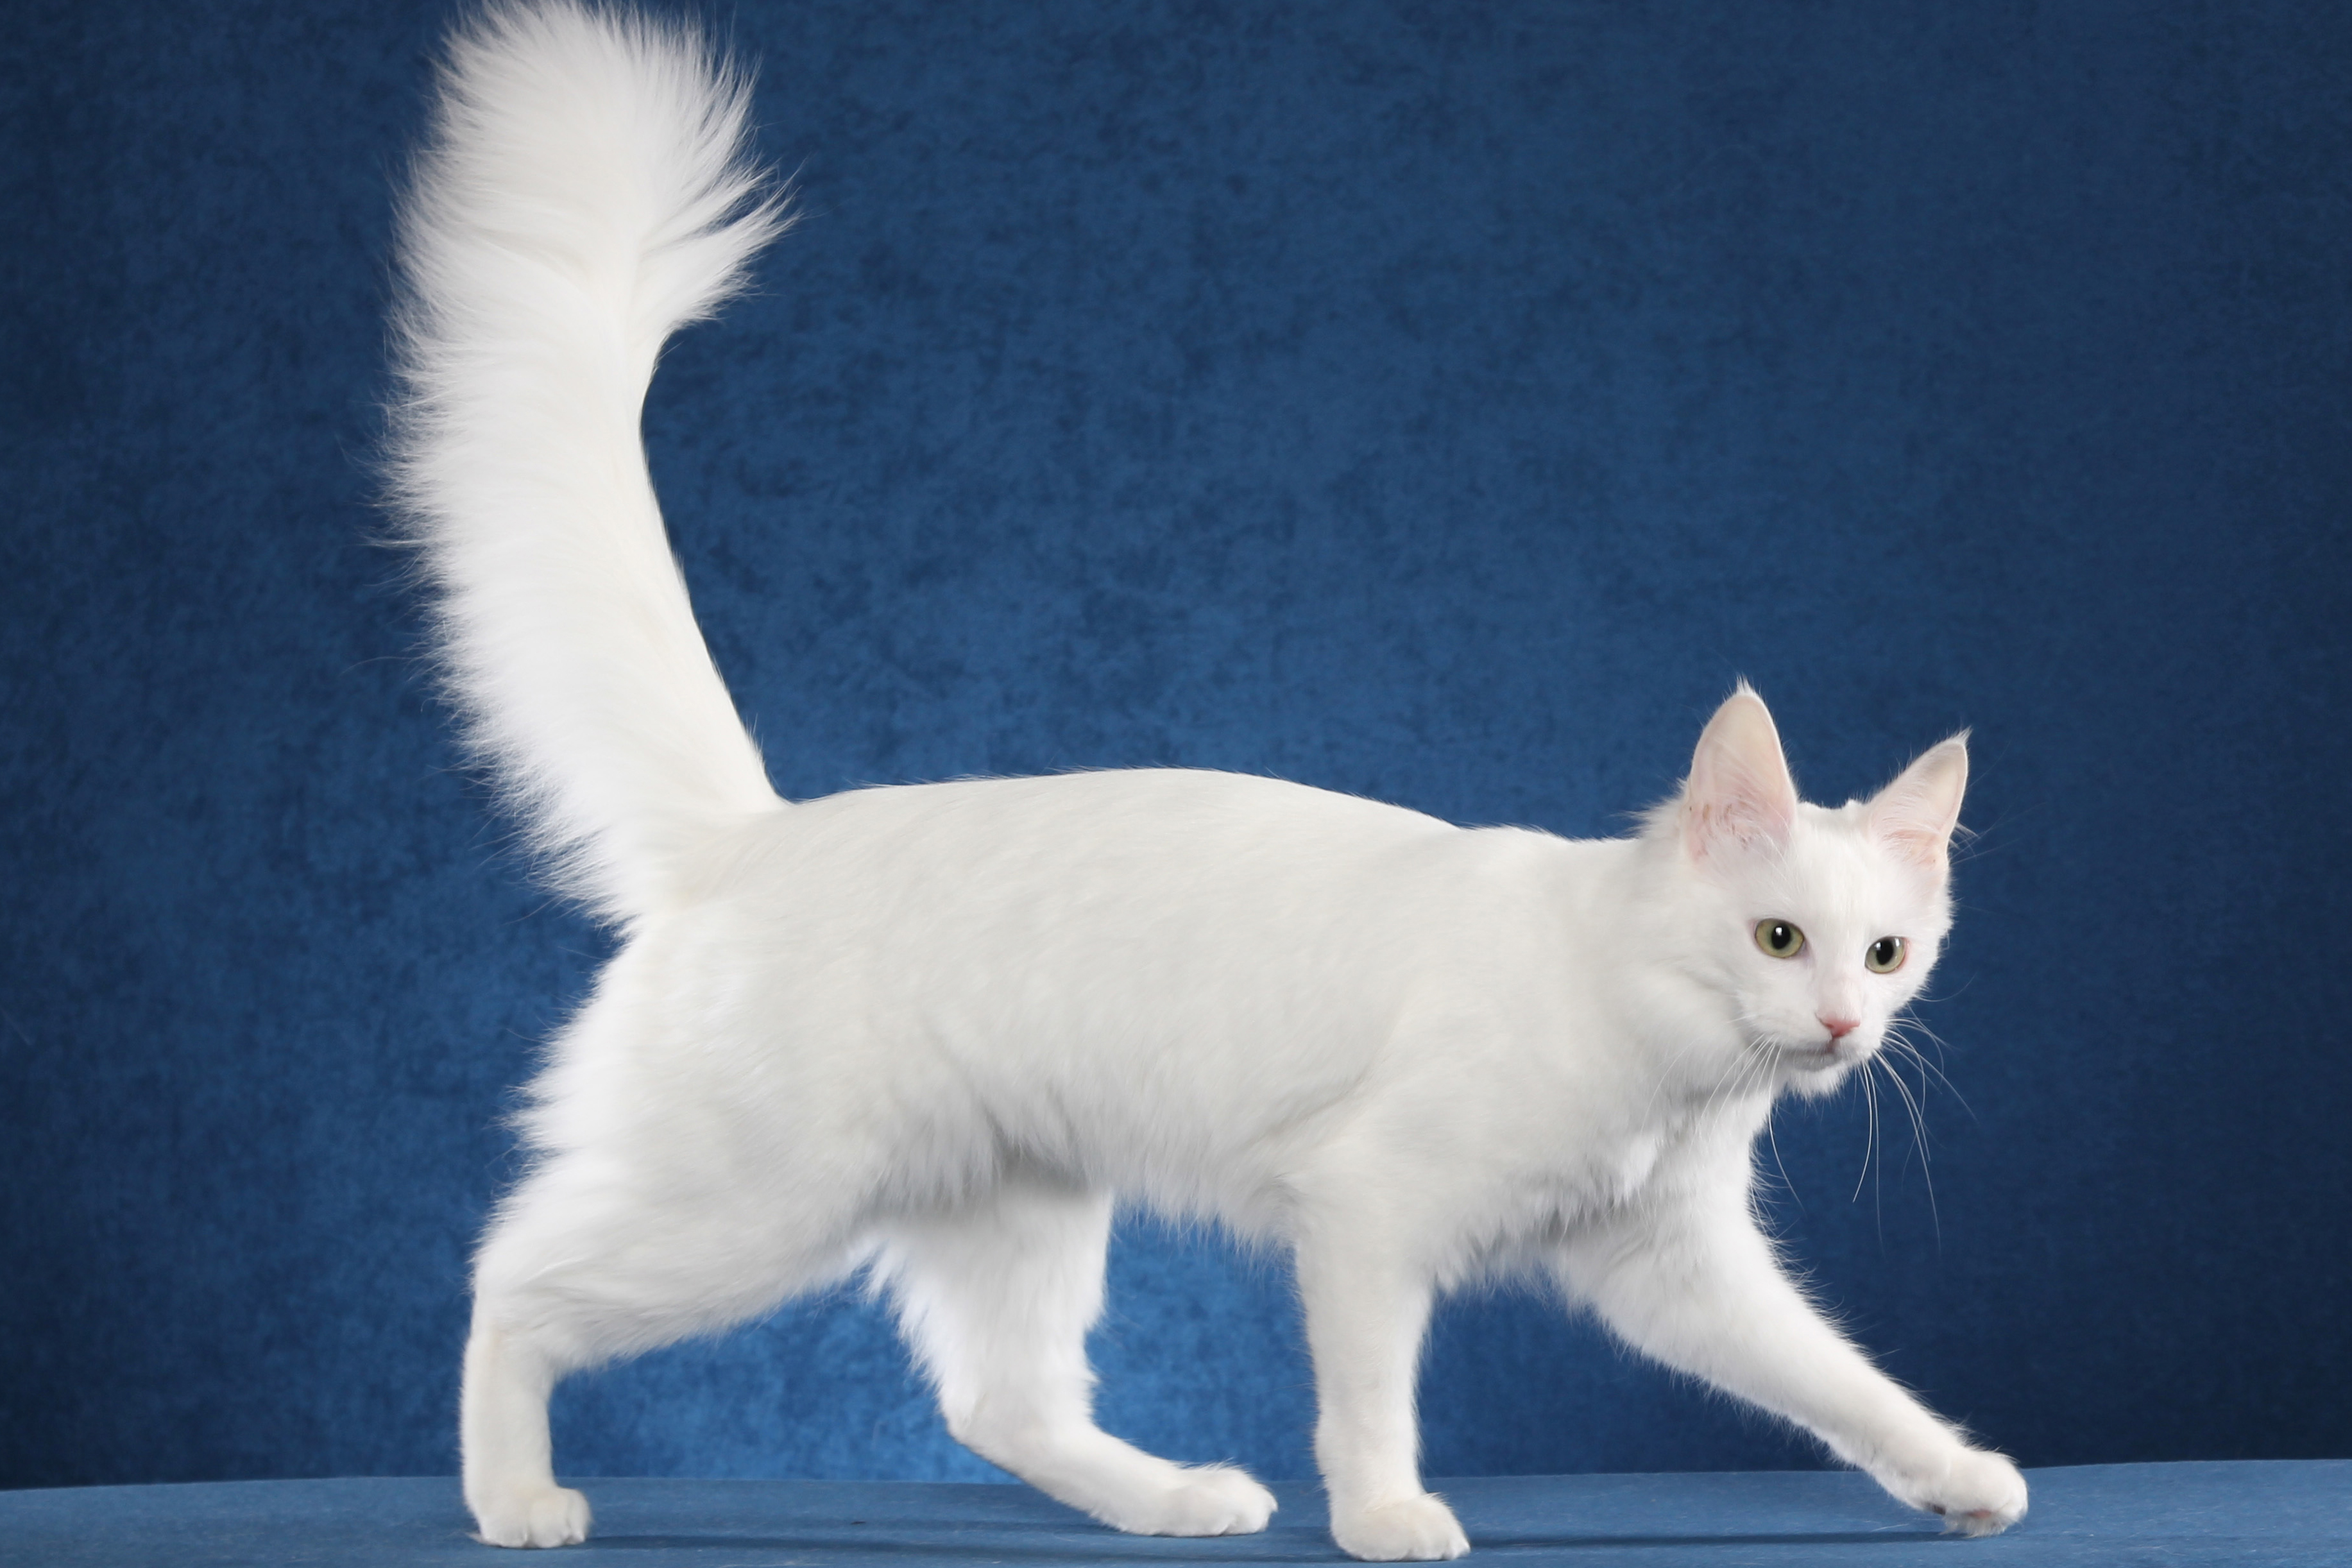 92a3f669a1 The Antlered Crown  My Favorite Cat Breeds  Turkish Angora